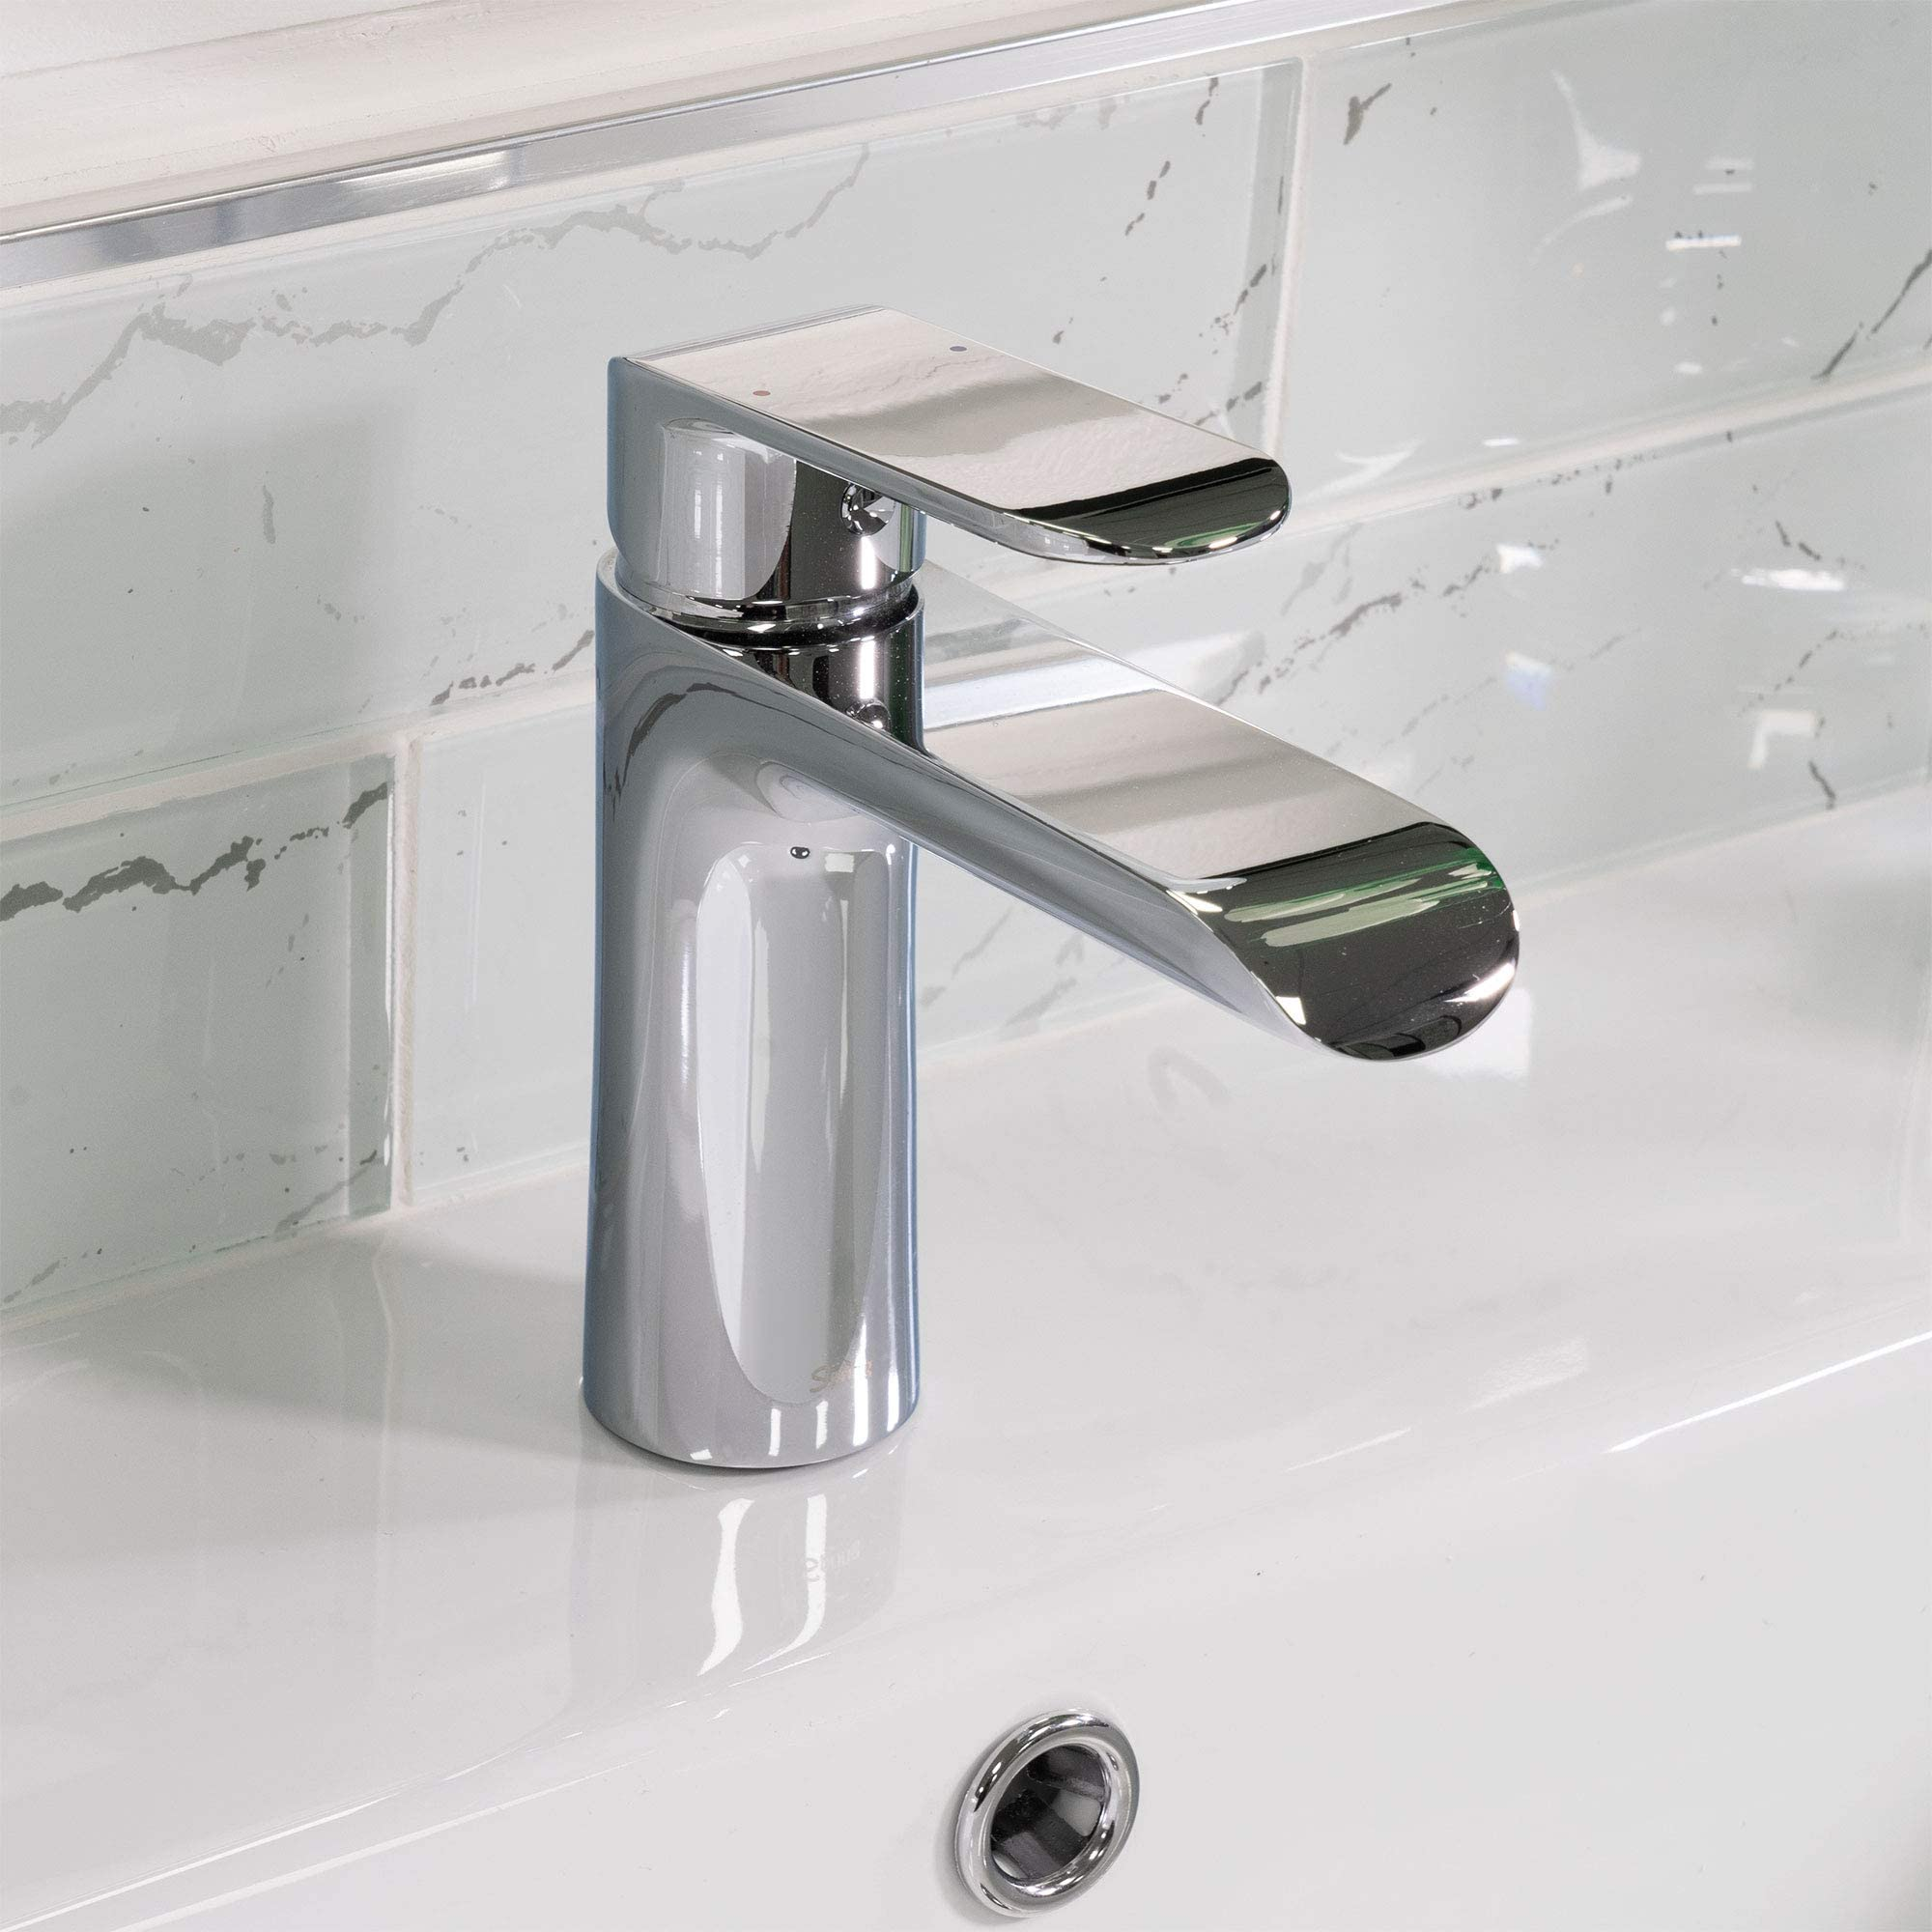 spring chrome bathroom sink faucet single handle brass material faucet 1 hole easy installation pop up drain assembly included wdg16431c by koozzo